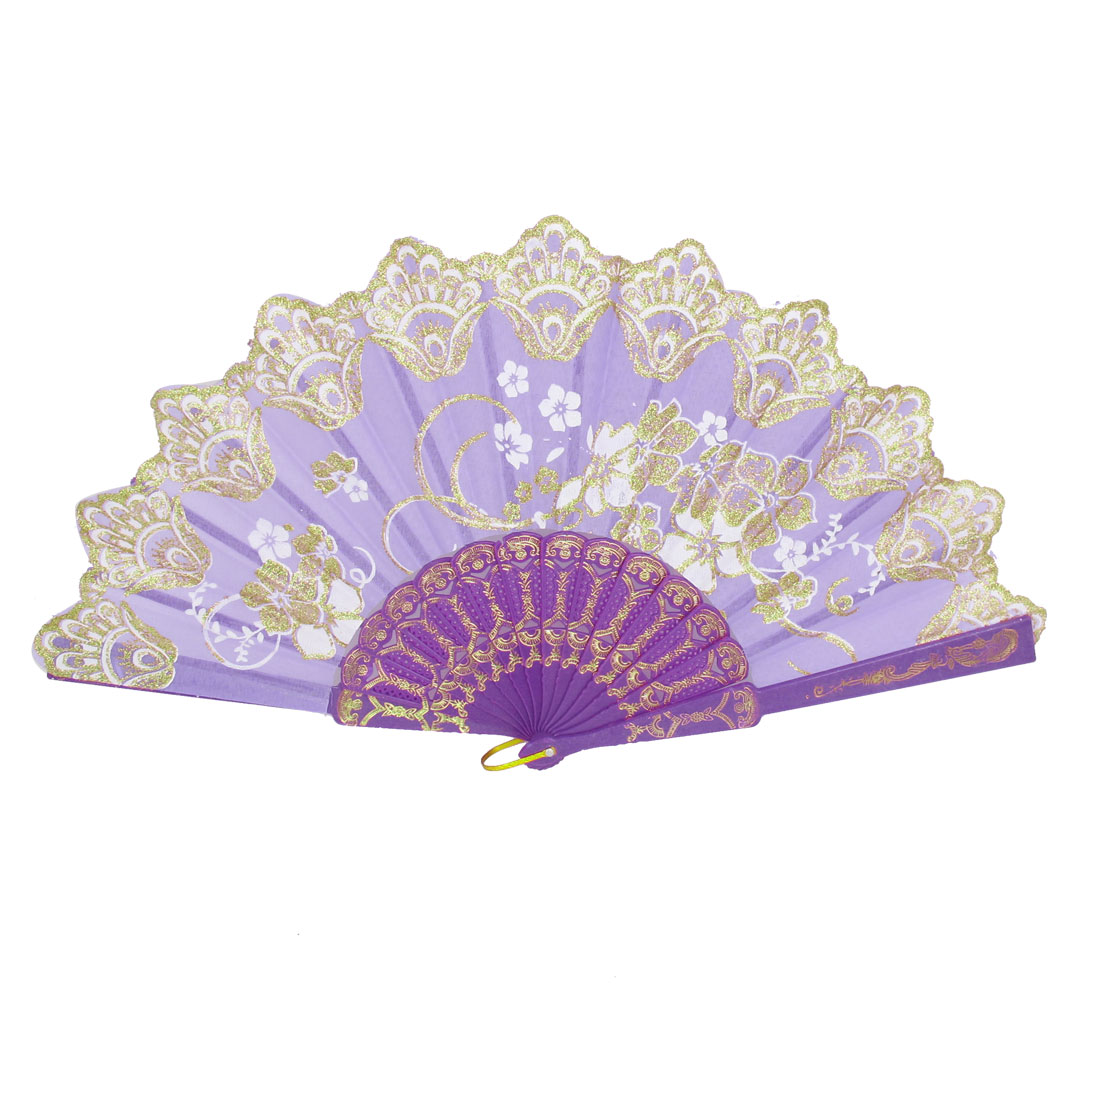 Women Carved Ribs Glittery Powder Decor Flower Pattern Folding Hand Fan Purple